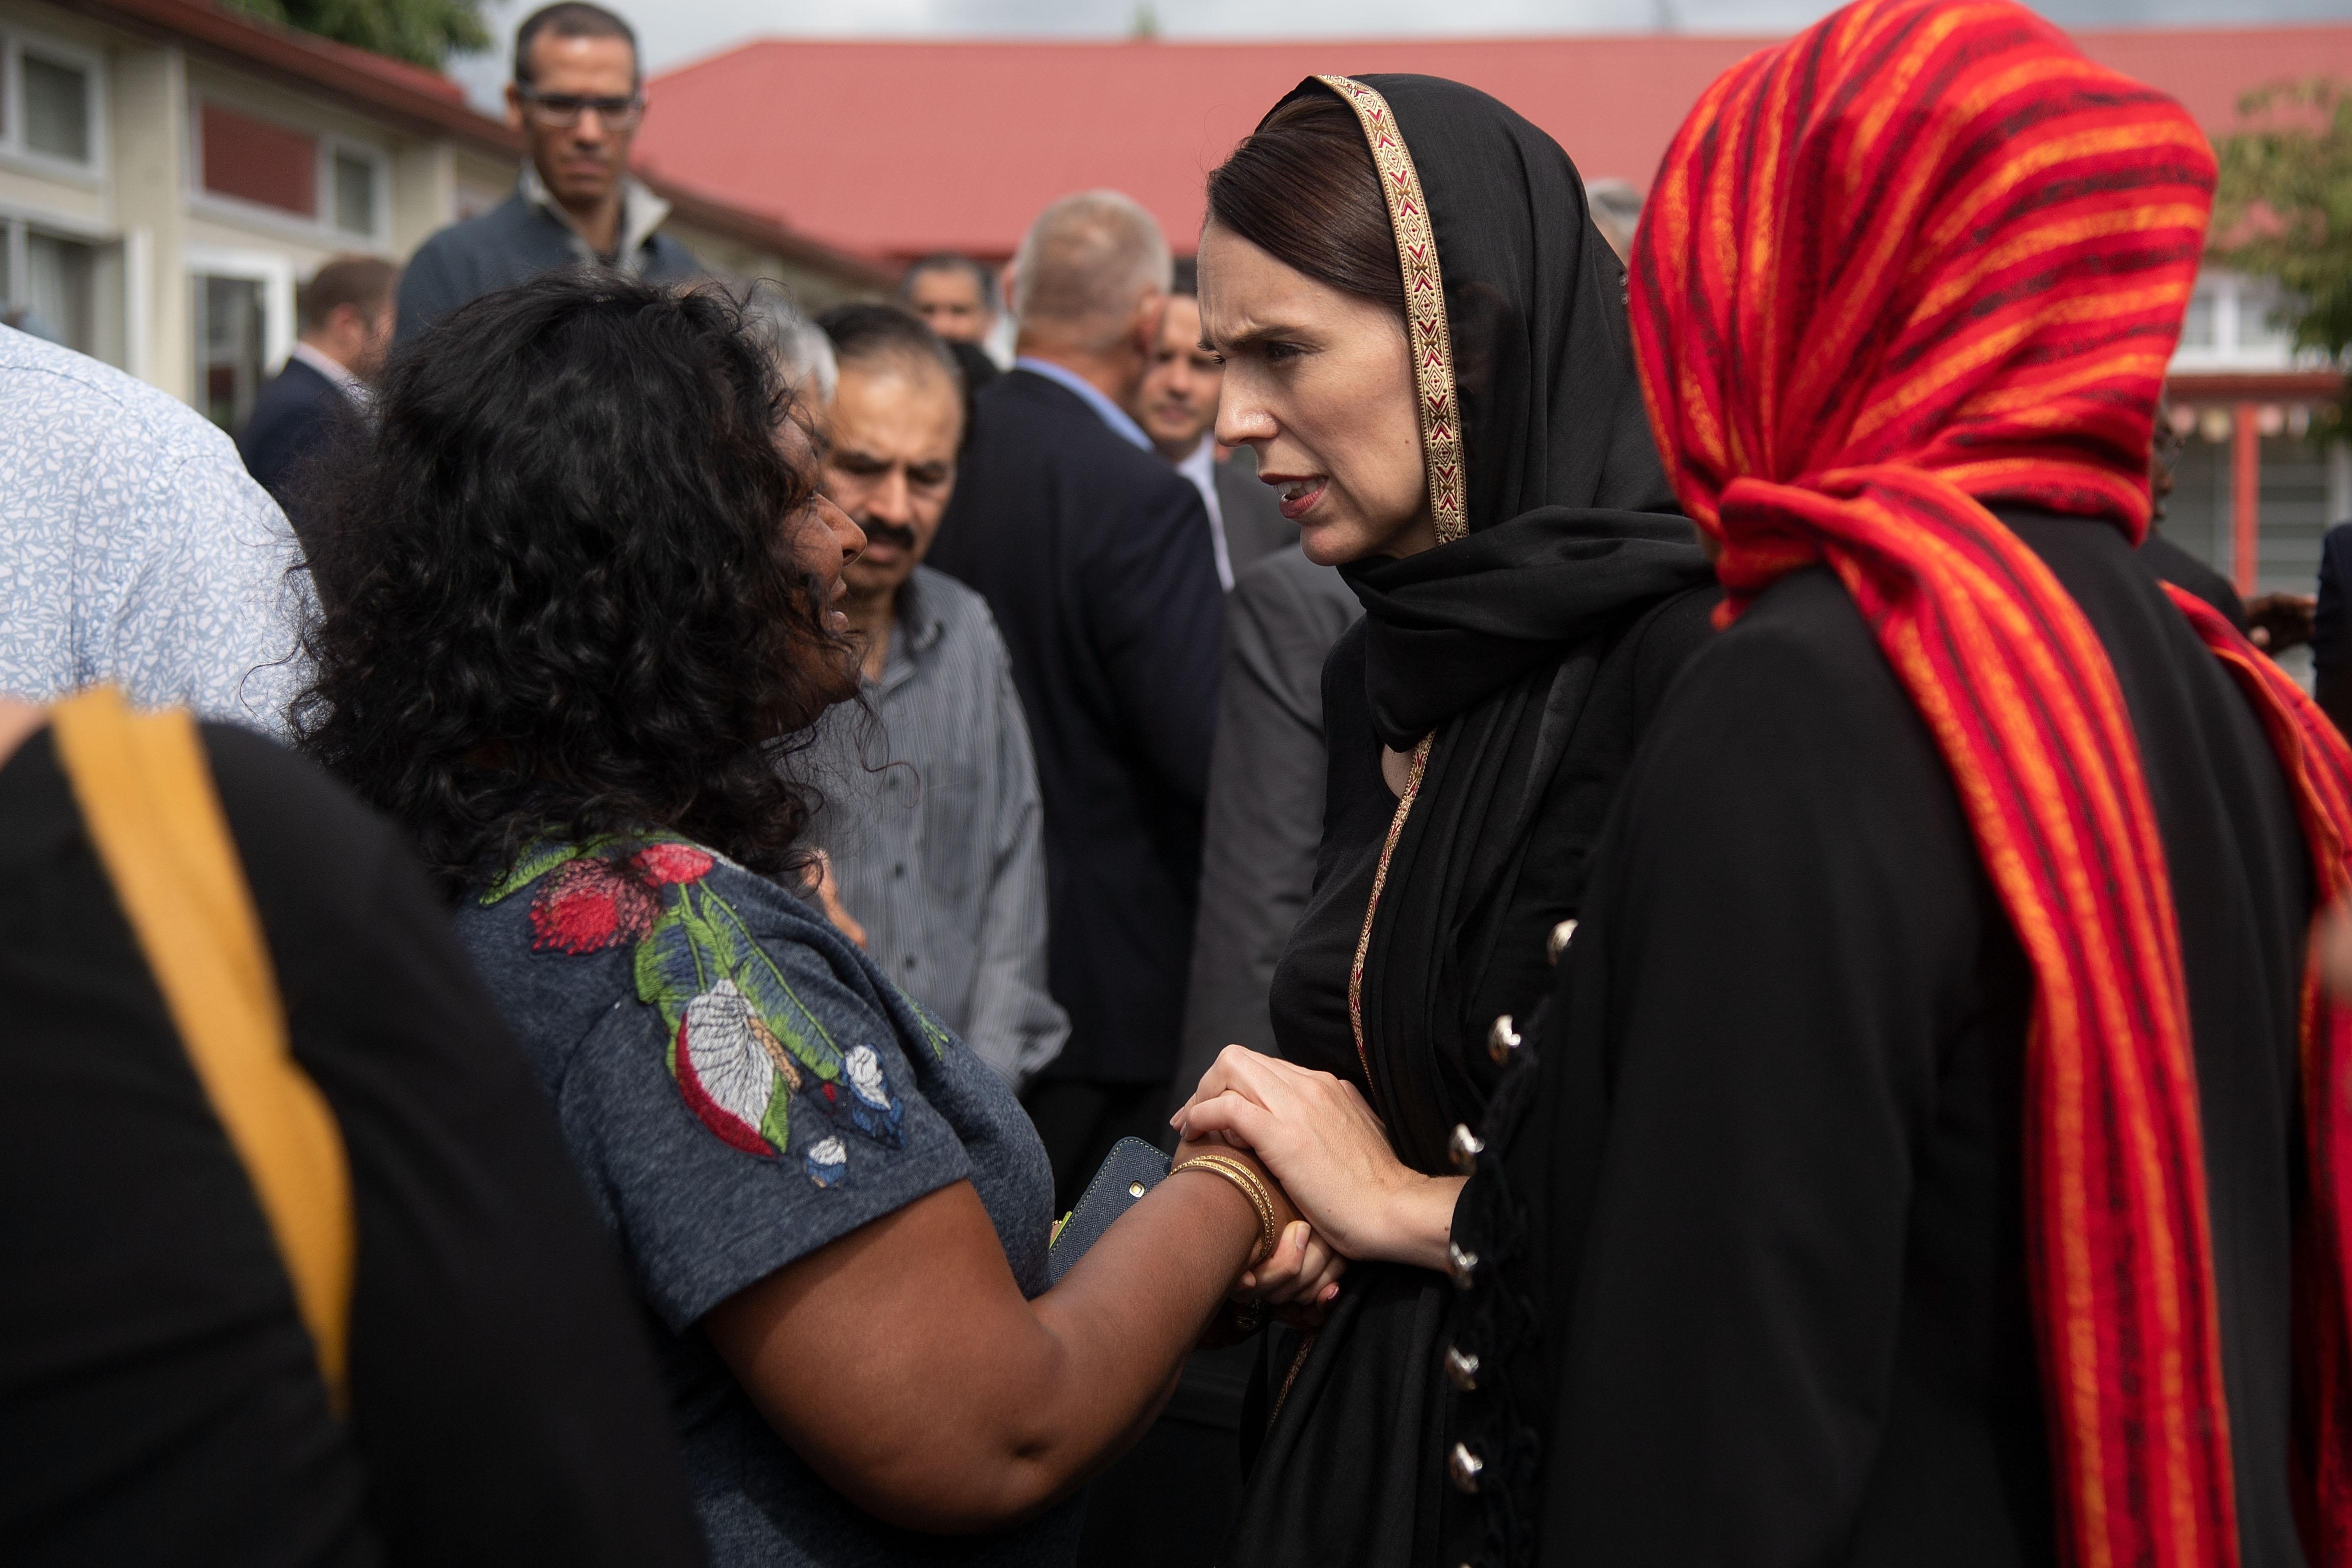 New Zealand Prime Minister Jacinda Ardern (C) speaks with a representative of the refugee centre during a visit to the Canterbury Refugee Centre in Christchurch on March 16, 2019.